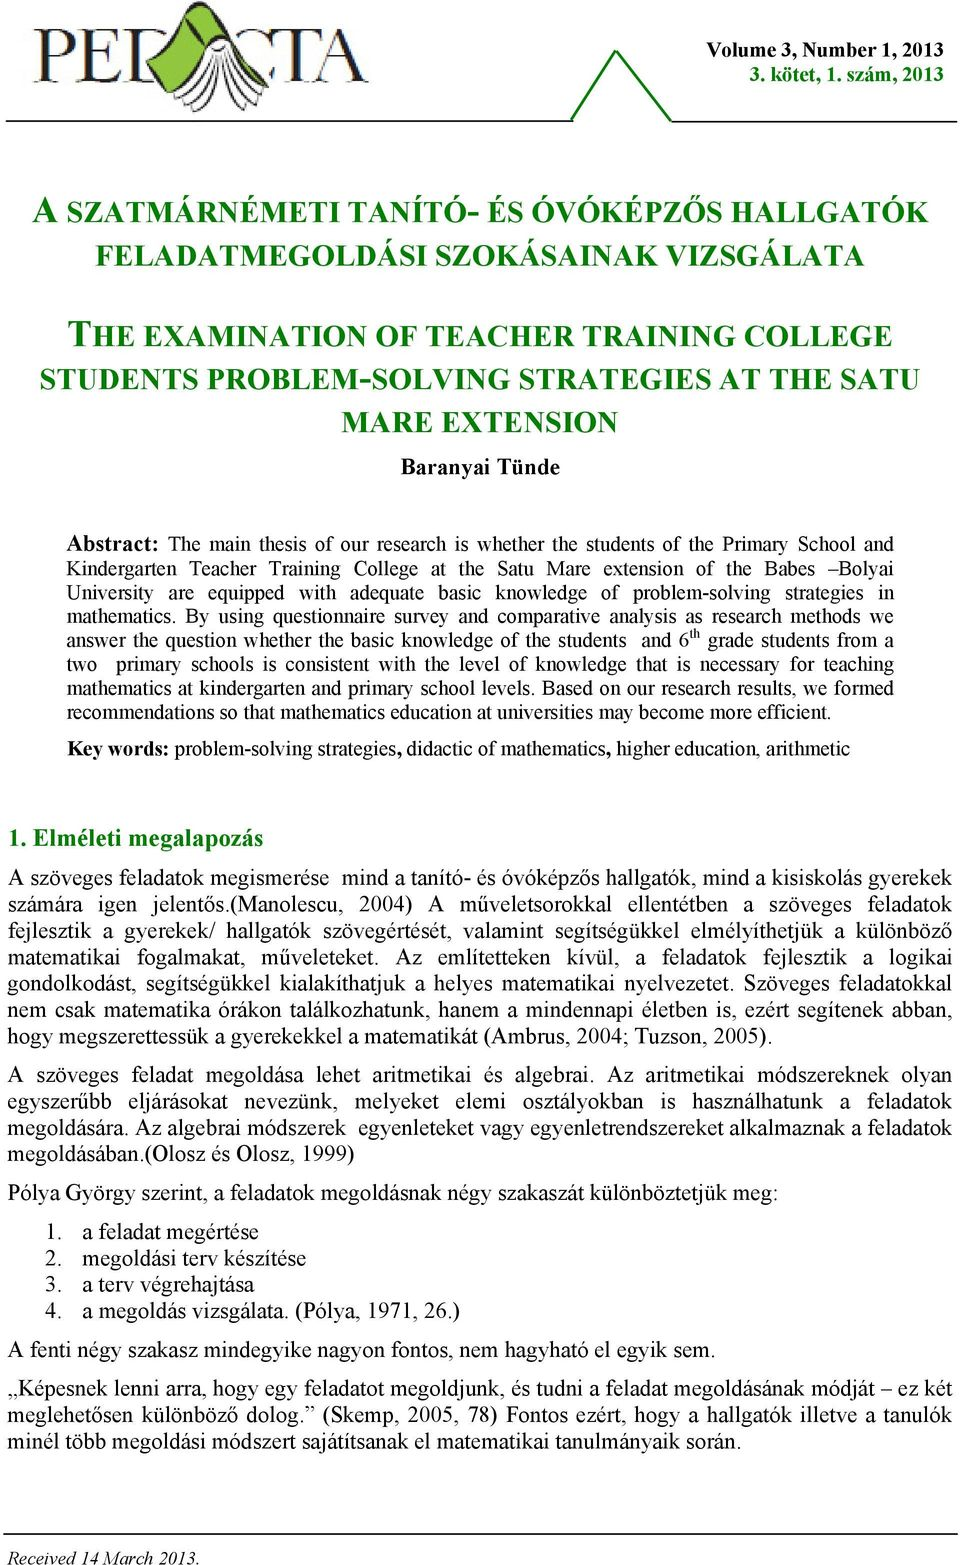 EXTENSION Baranyai Tünde Abstract: The main thesis of our research is whether the students of the Primary School and Kindergarten Teacher Training College at the Satu Mare extension of the Babes